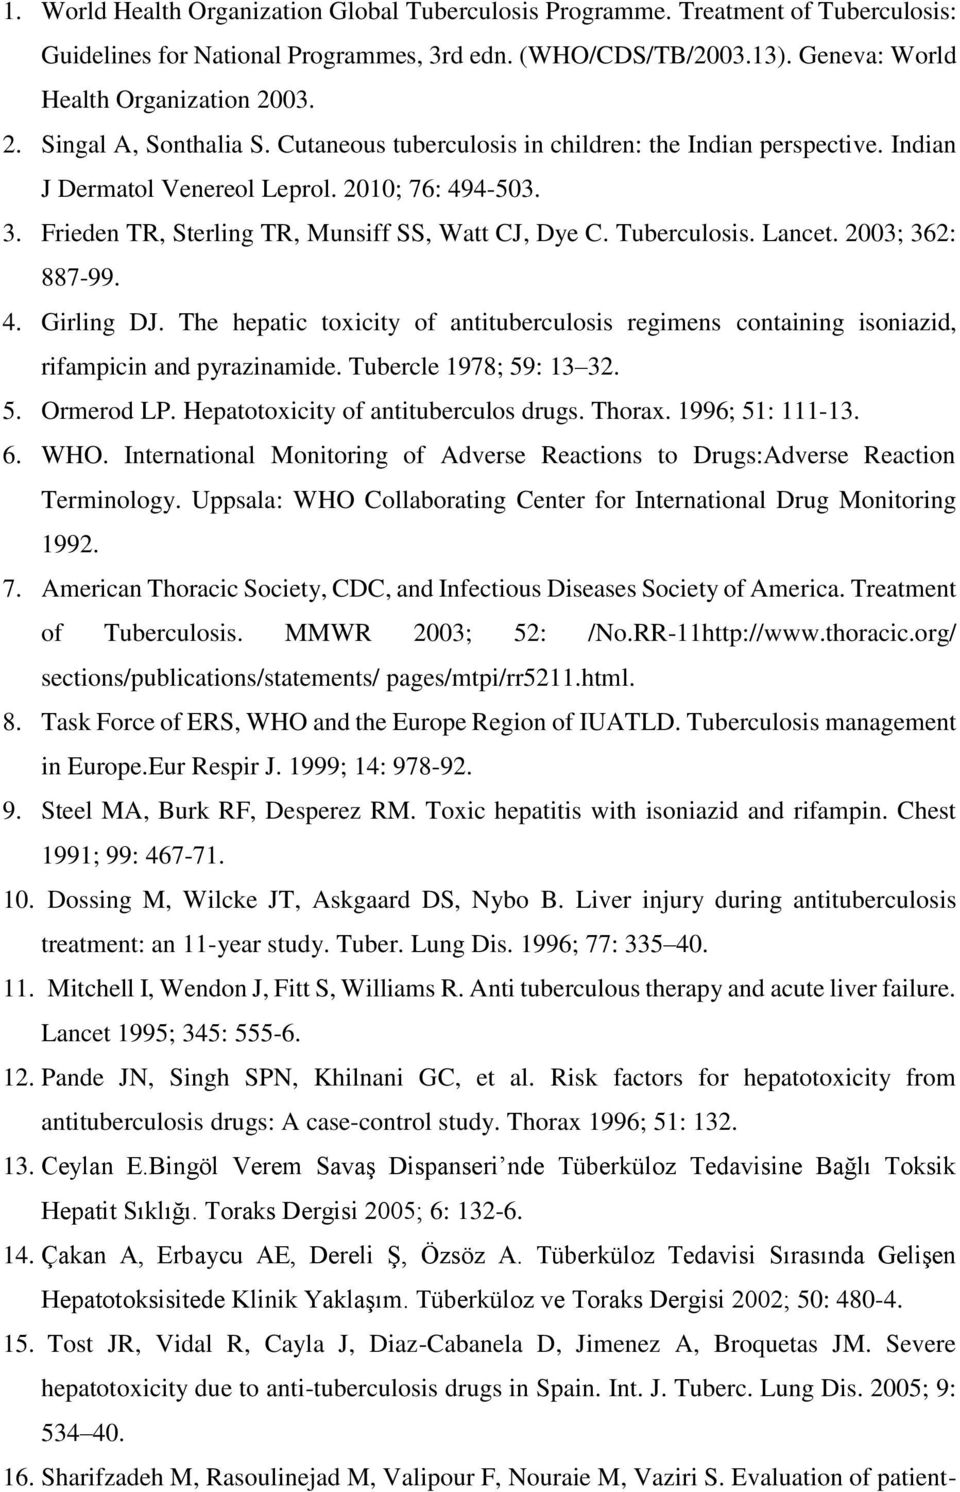 Tuberculosis. Lancet. 2003; 362: 887-99. 4. Girling DJ. The hepatic toxicity of antituberculosis regimens containing isoniazid, rifampicin and pyrazinamide. Tubercle 1978; 59: 13 32. 5. Ormerod LP.